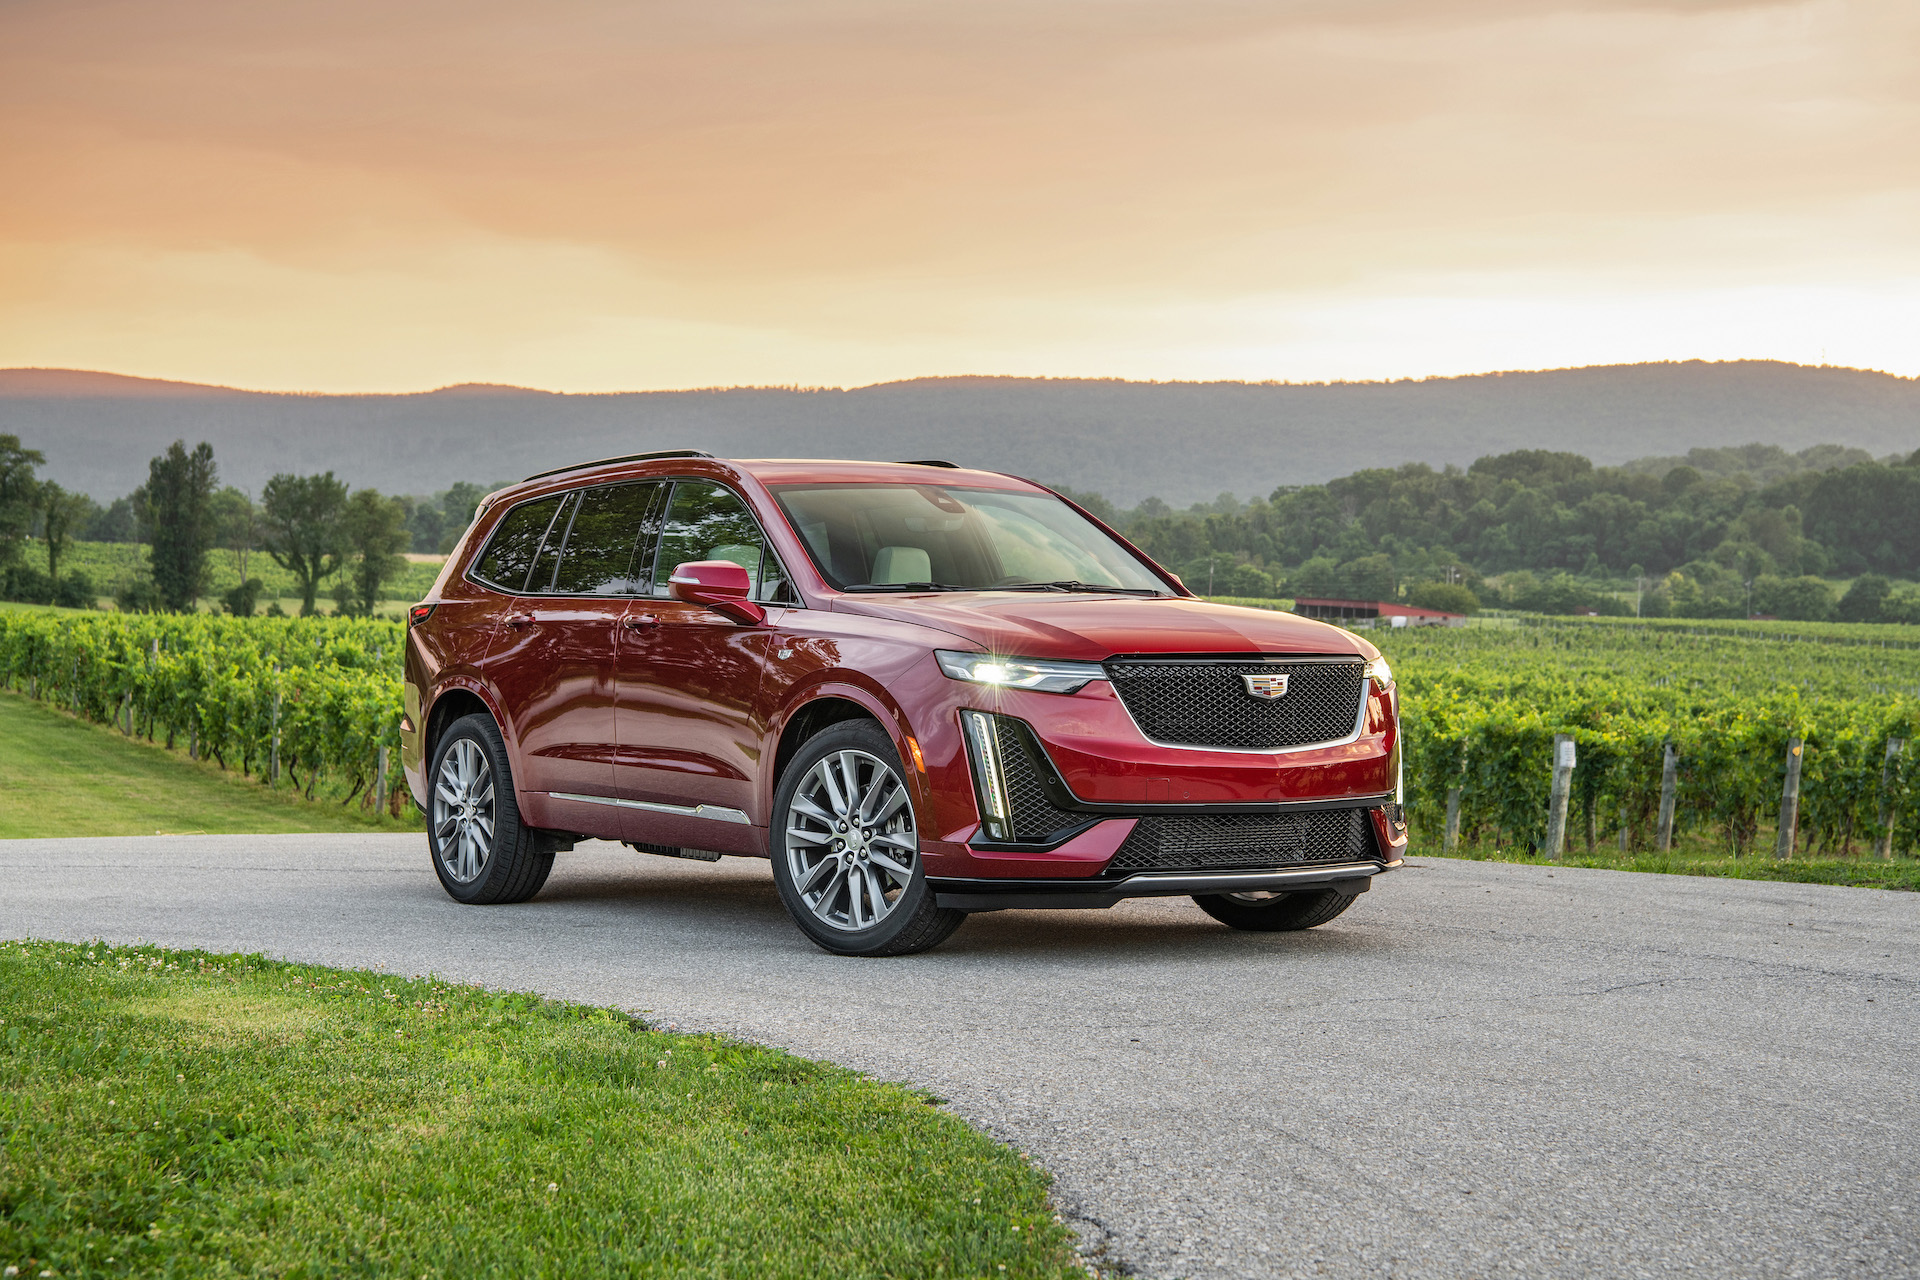 2020 Cadillac Xt5 Review Interior Price Specs >> 2020 Cadillac Xt6 Review Ratings Specs Prices And Photos